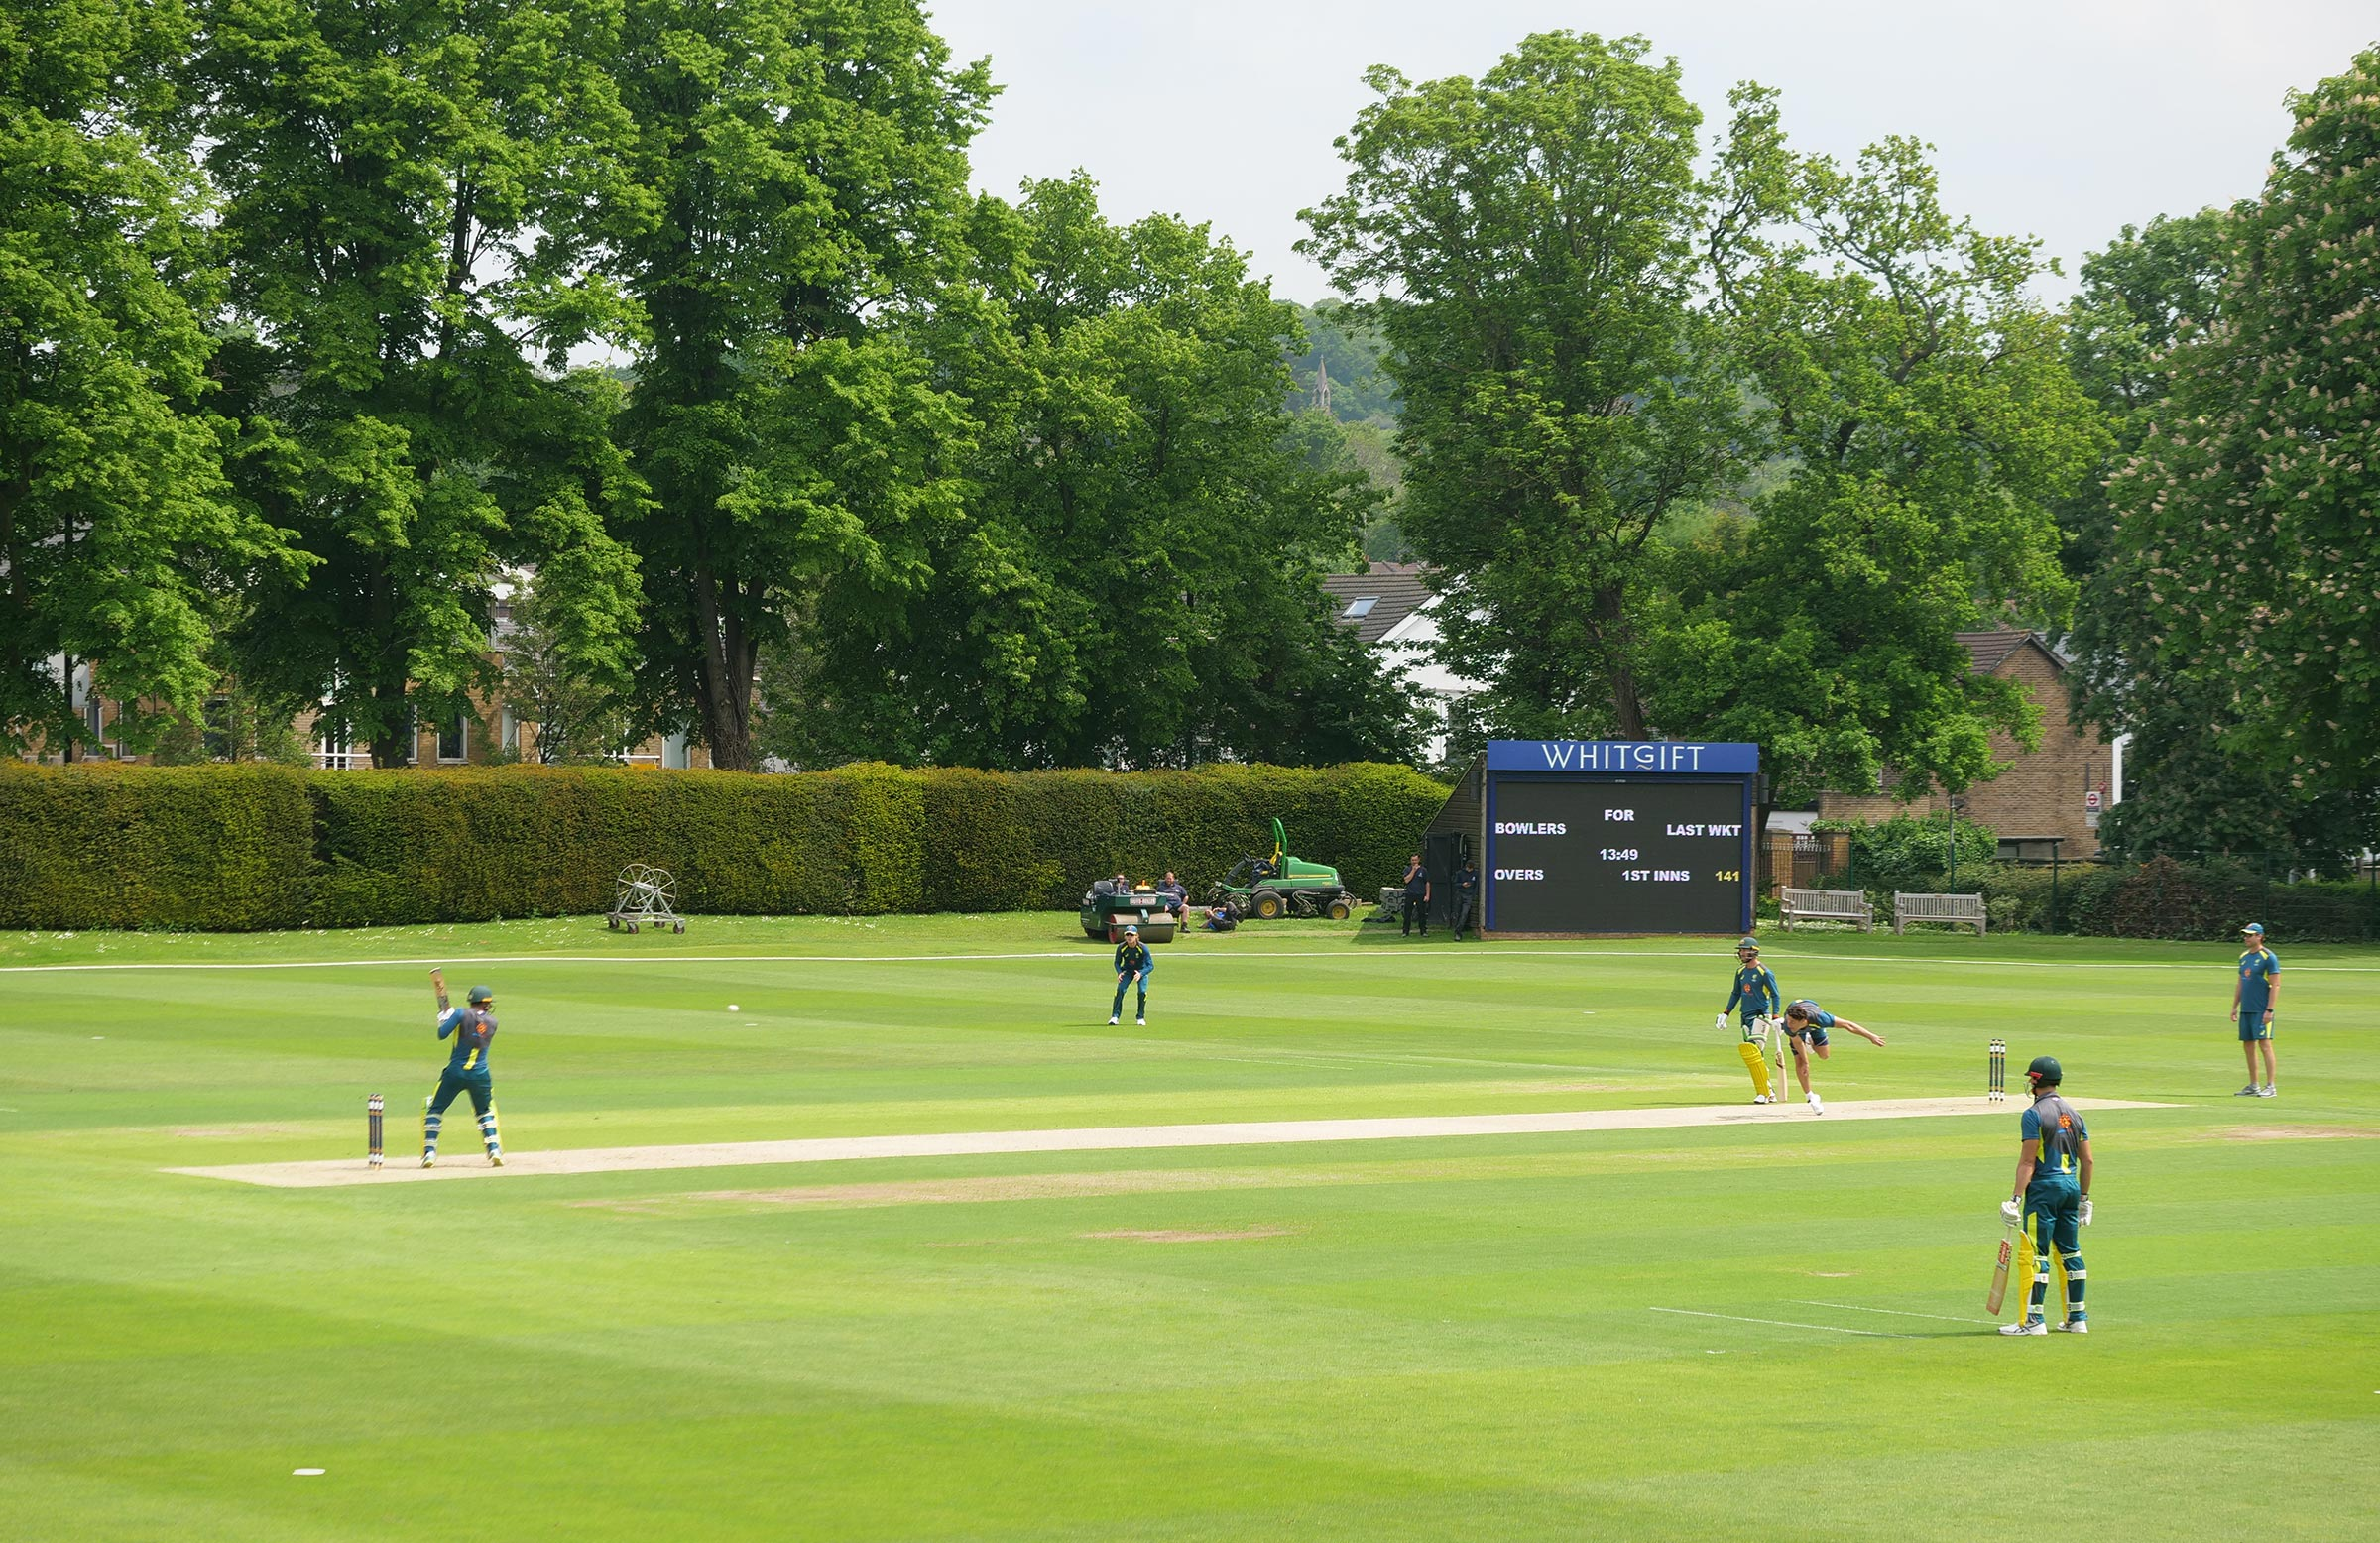 Picturesque surrounds for a hit-out // Cricket Network